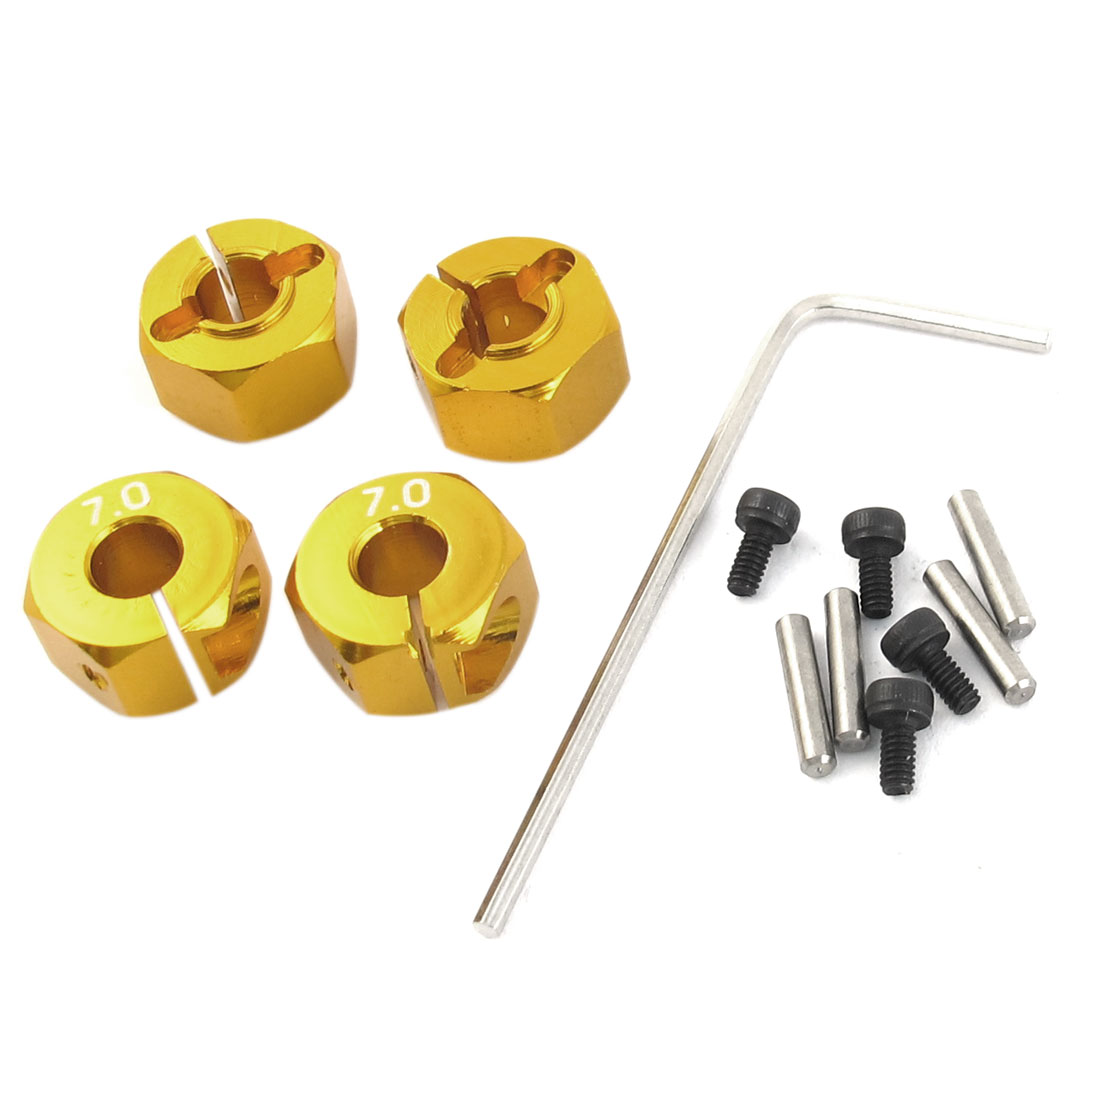 4 Pcs Gold Tone Aluminum Hex Adapter 7mm for 1/10 RC Model Racing Car